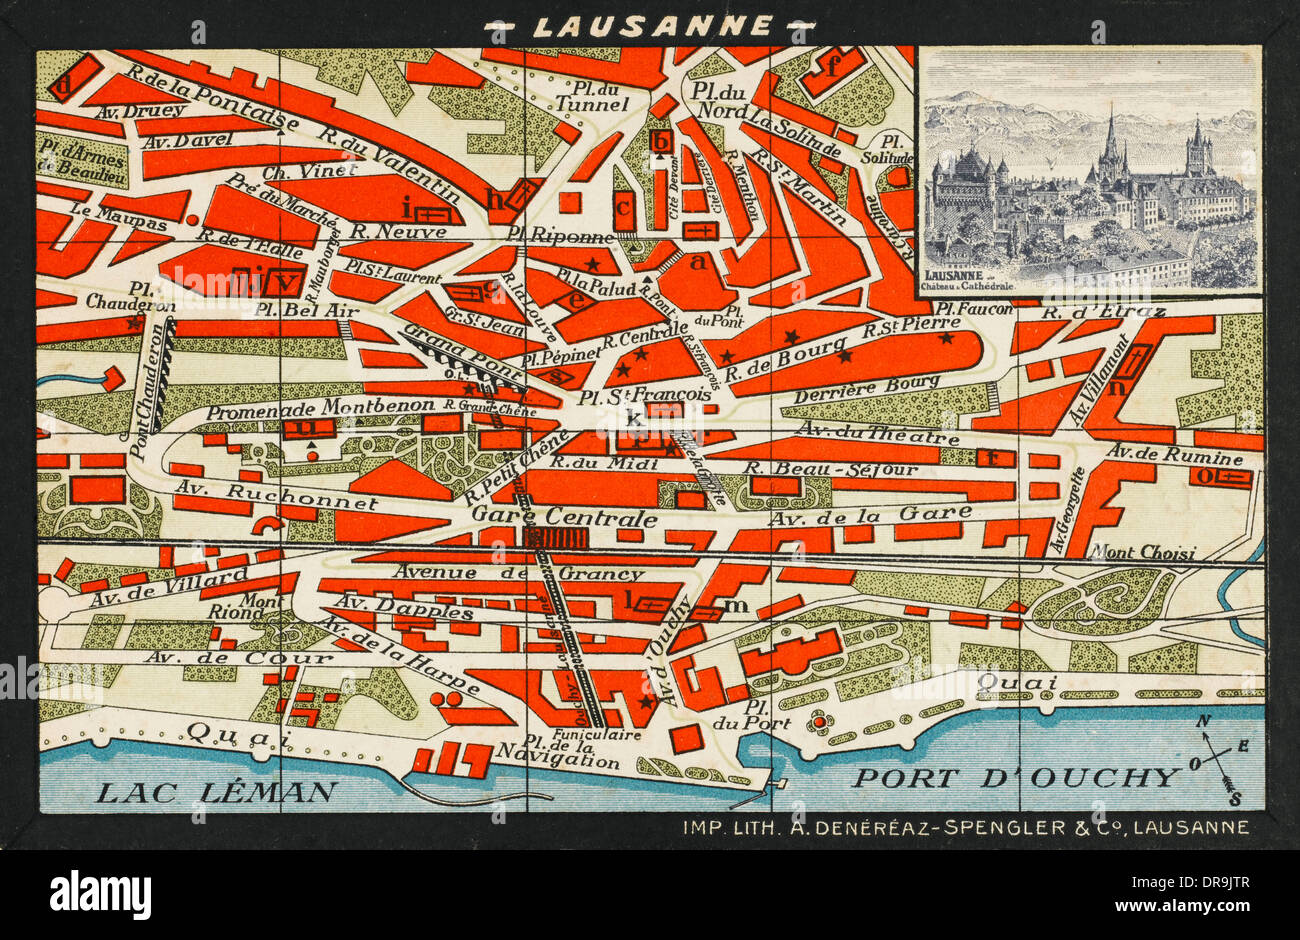 Map of Lausanne - Stock Image